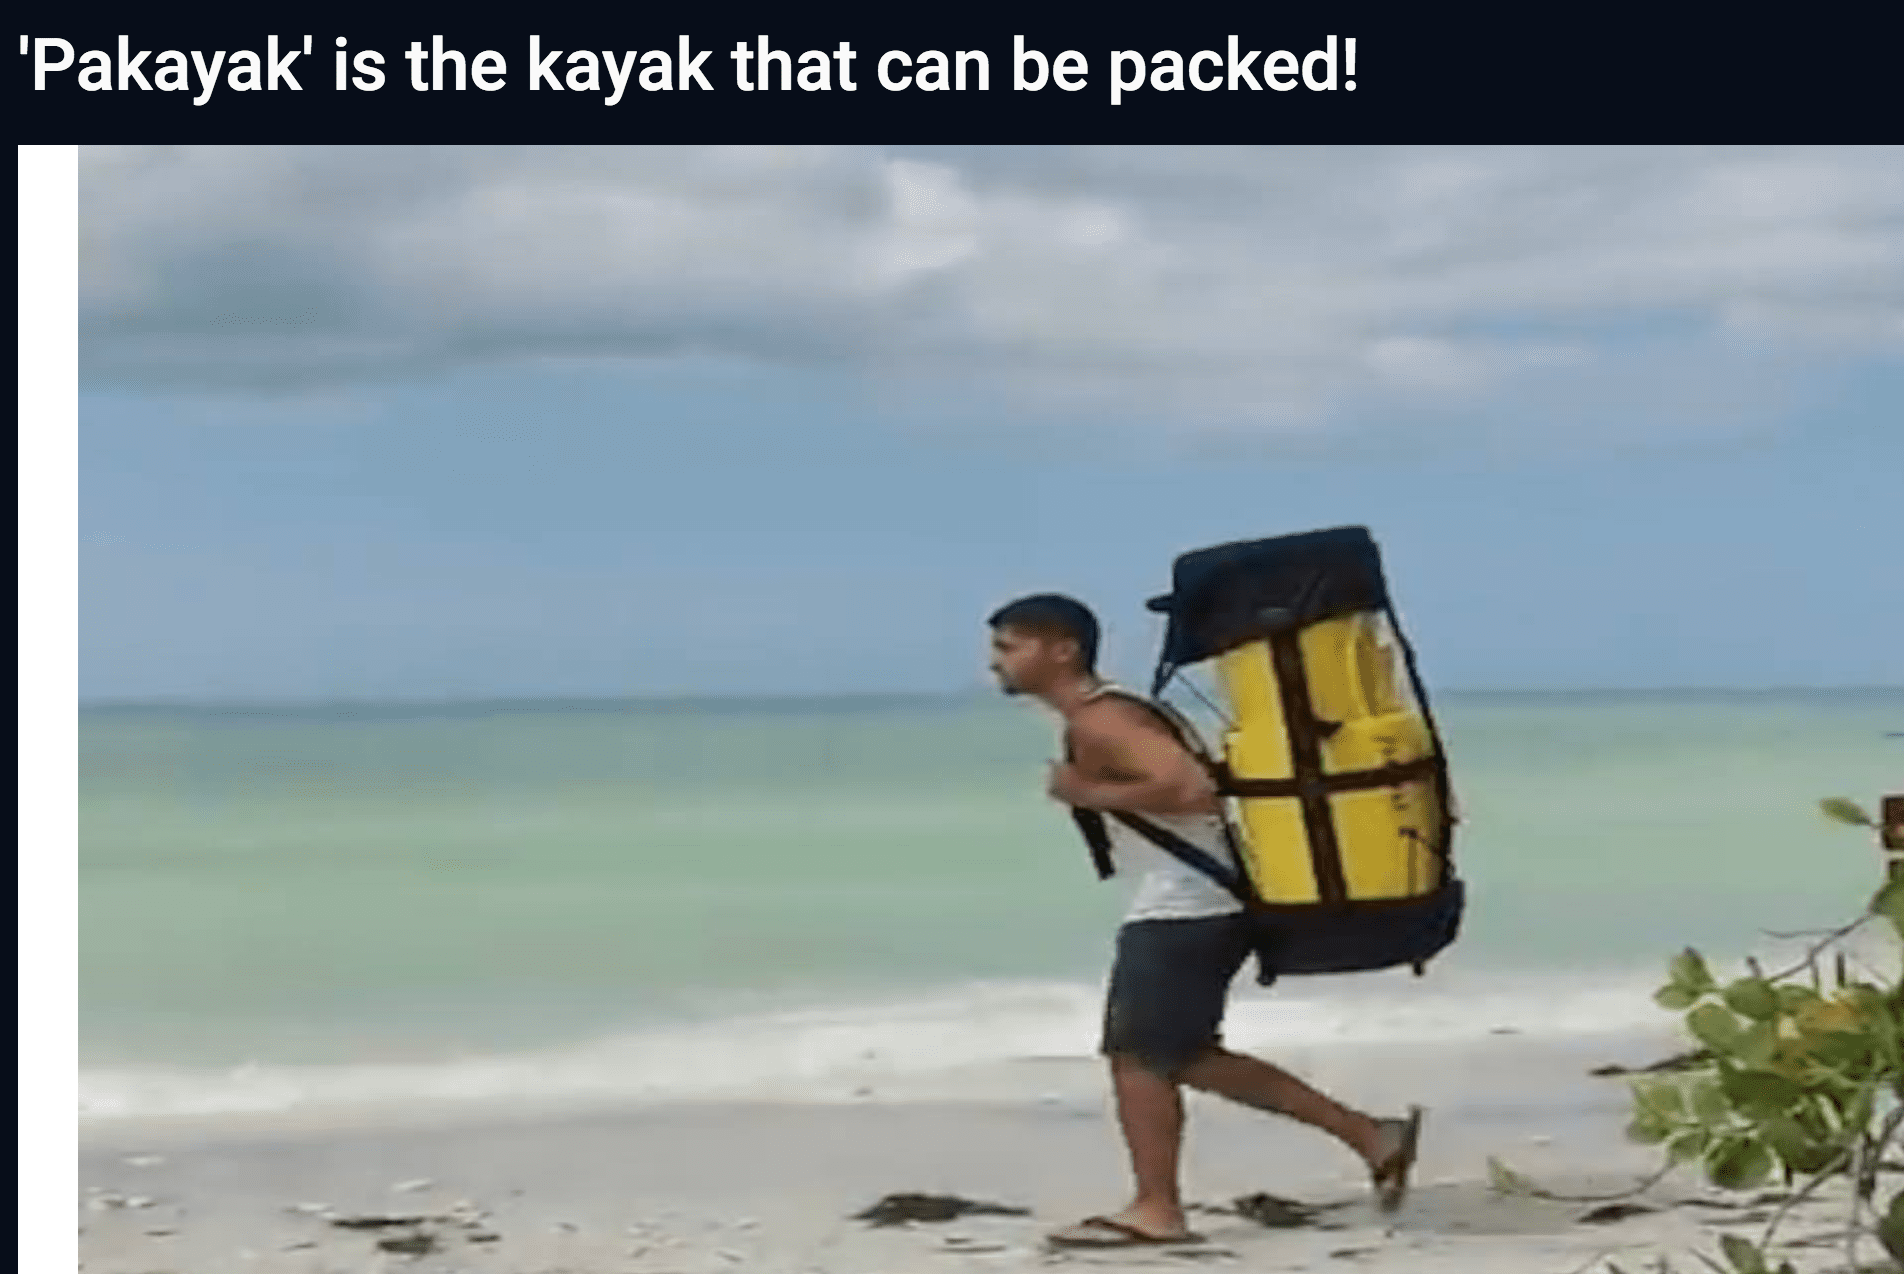 Vid Good: 'Pakayak' is the kayak that can be packed!